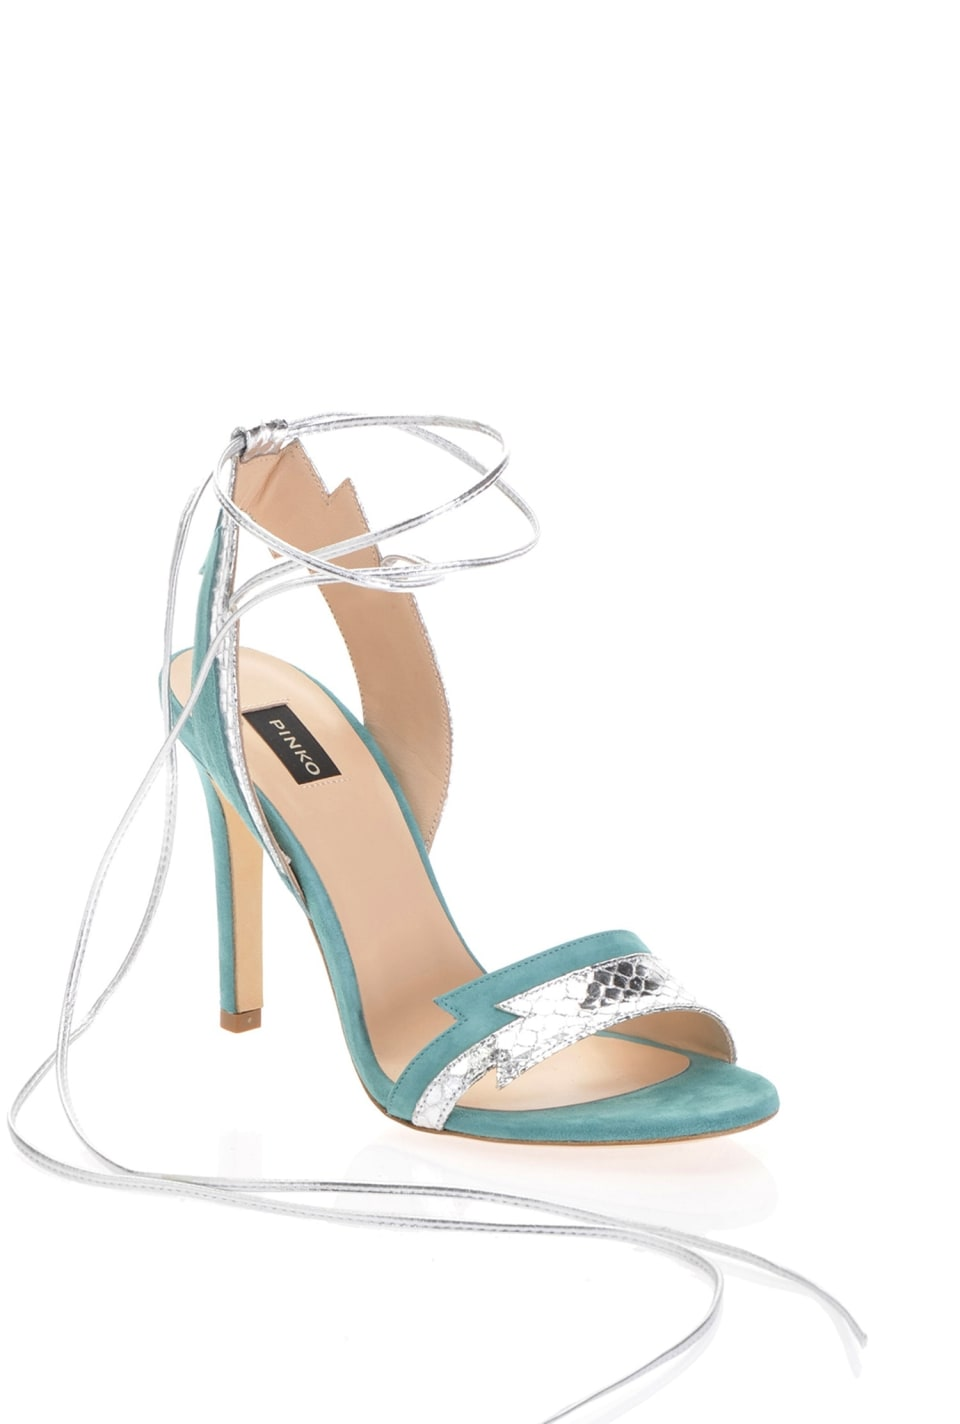 Sandals with ankle laces - Pinko